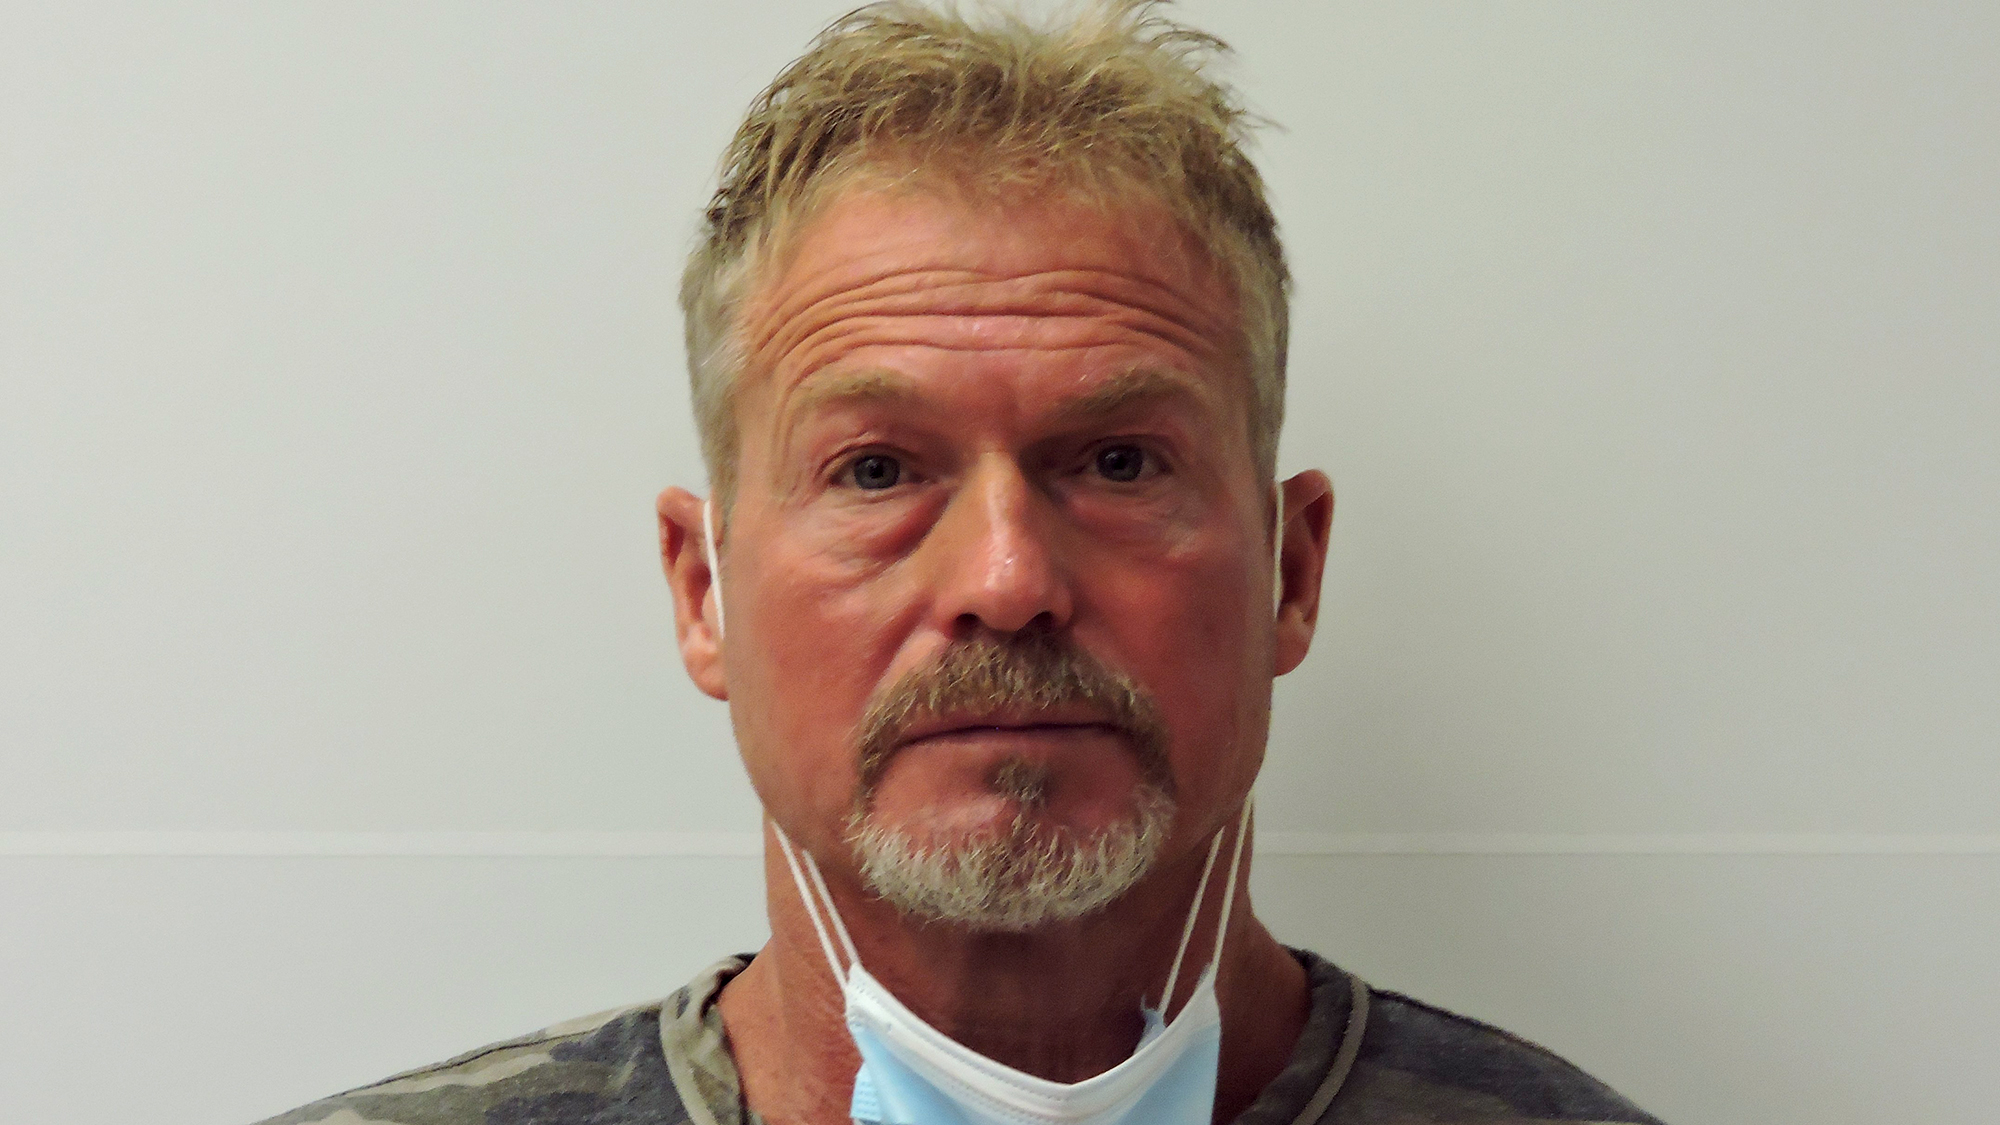 Husband charged with murder of missing wife in Colorado is also charged with voter fraud for filling out her ballot